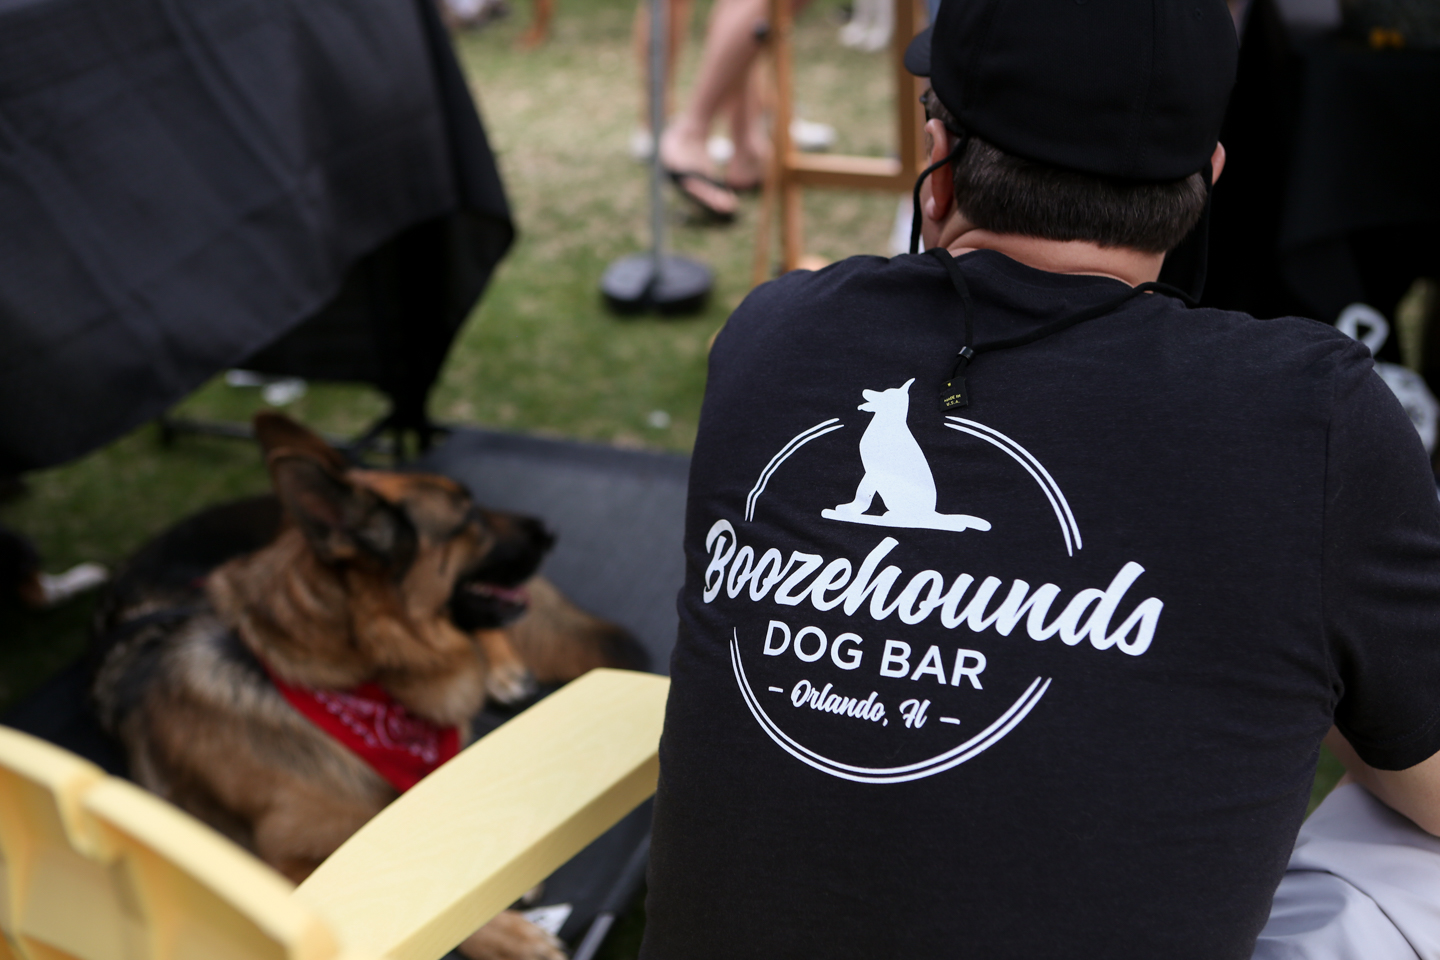 paws-in-the-park-boozehounds-dog-bar-www.dynamitestudioinc.com-professional-event-photography-orlando-32.jpg